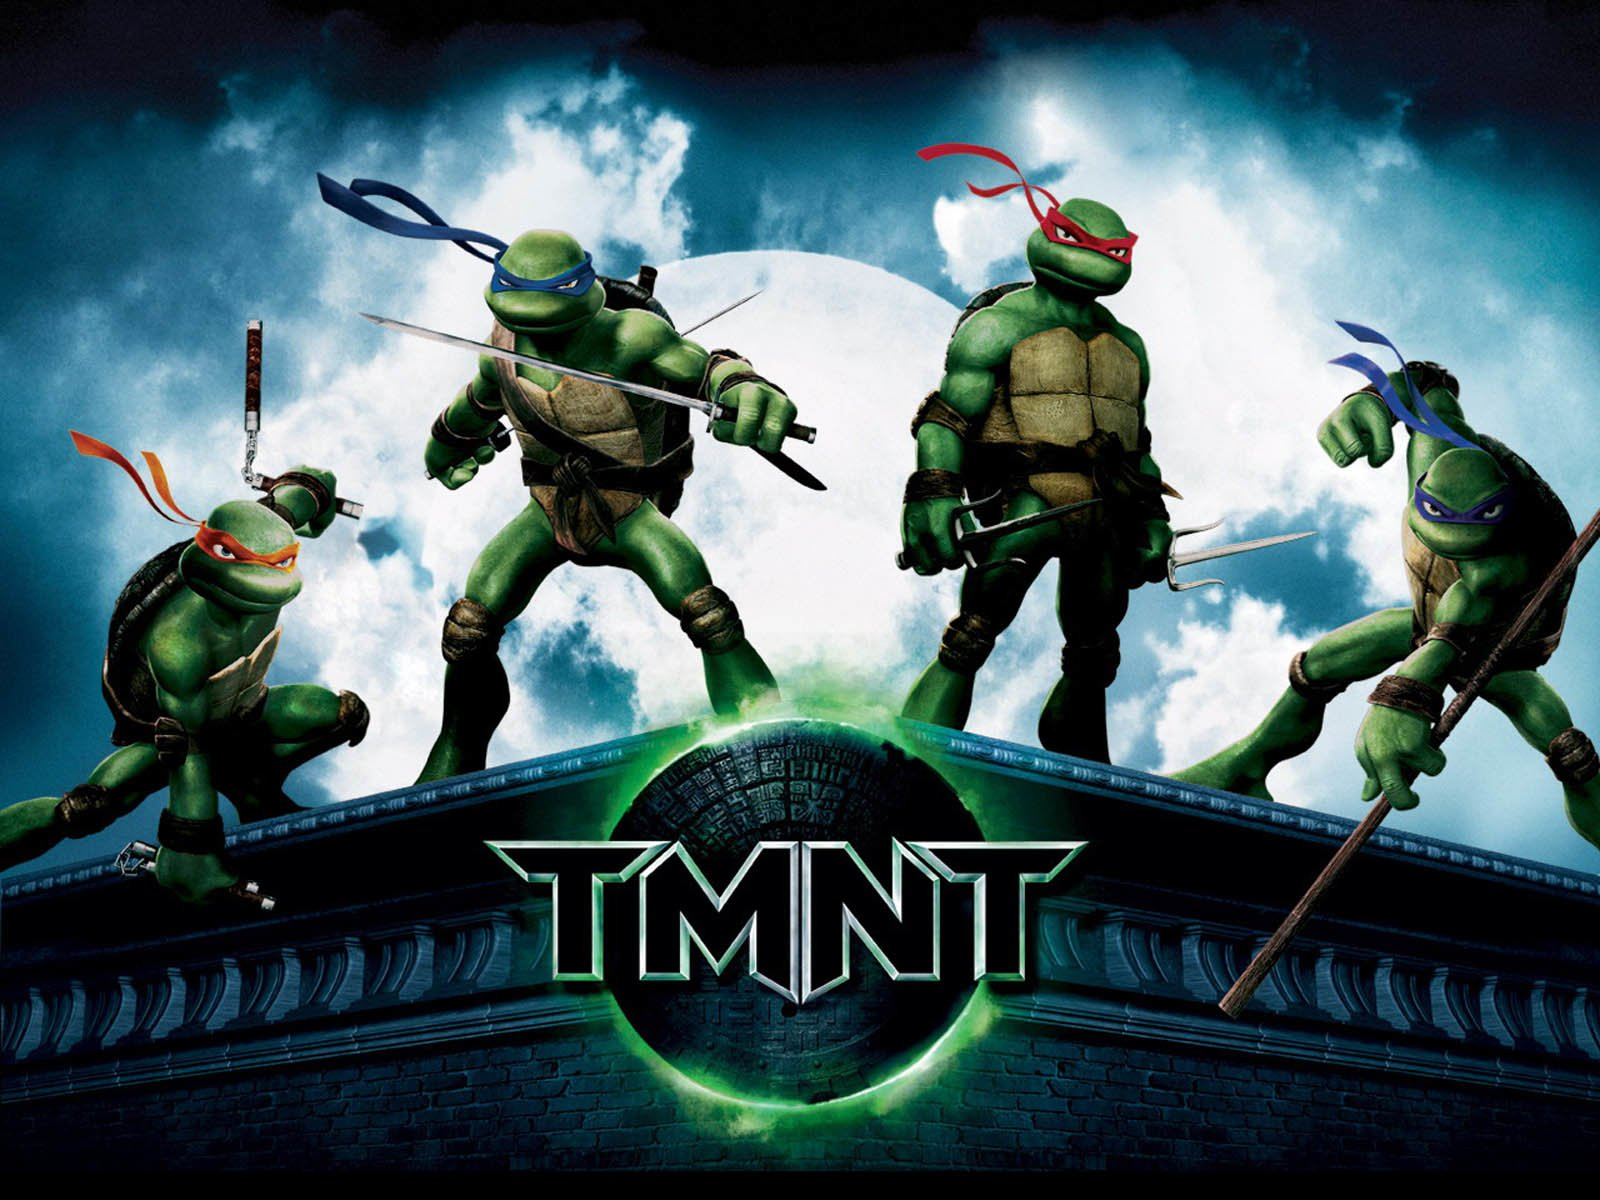 Cartoon - TMNT  Michelangelo Leonardo (TMNT) Donatello (TMNT) Raphael (TMNT) Wallpaper